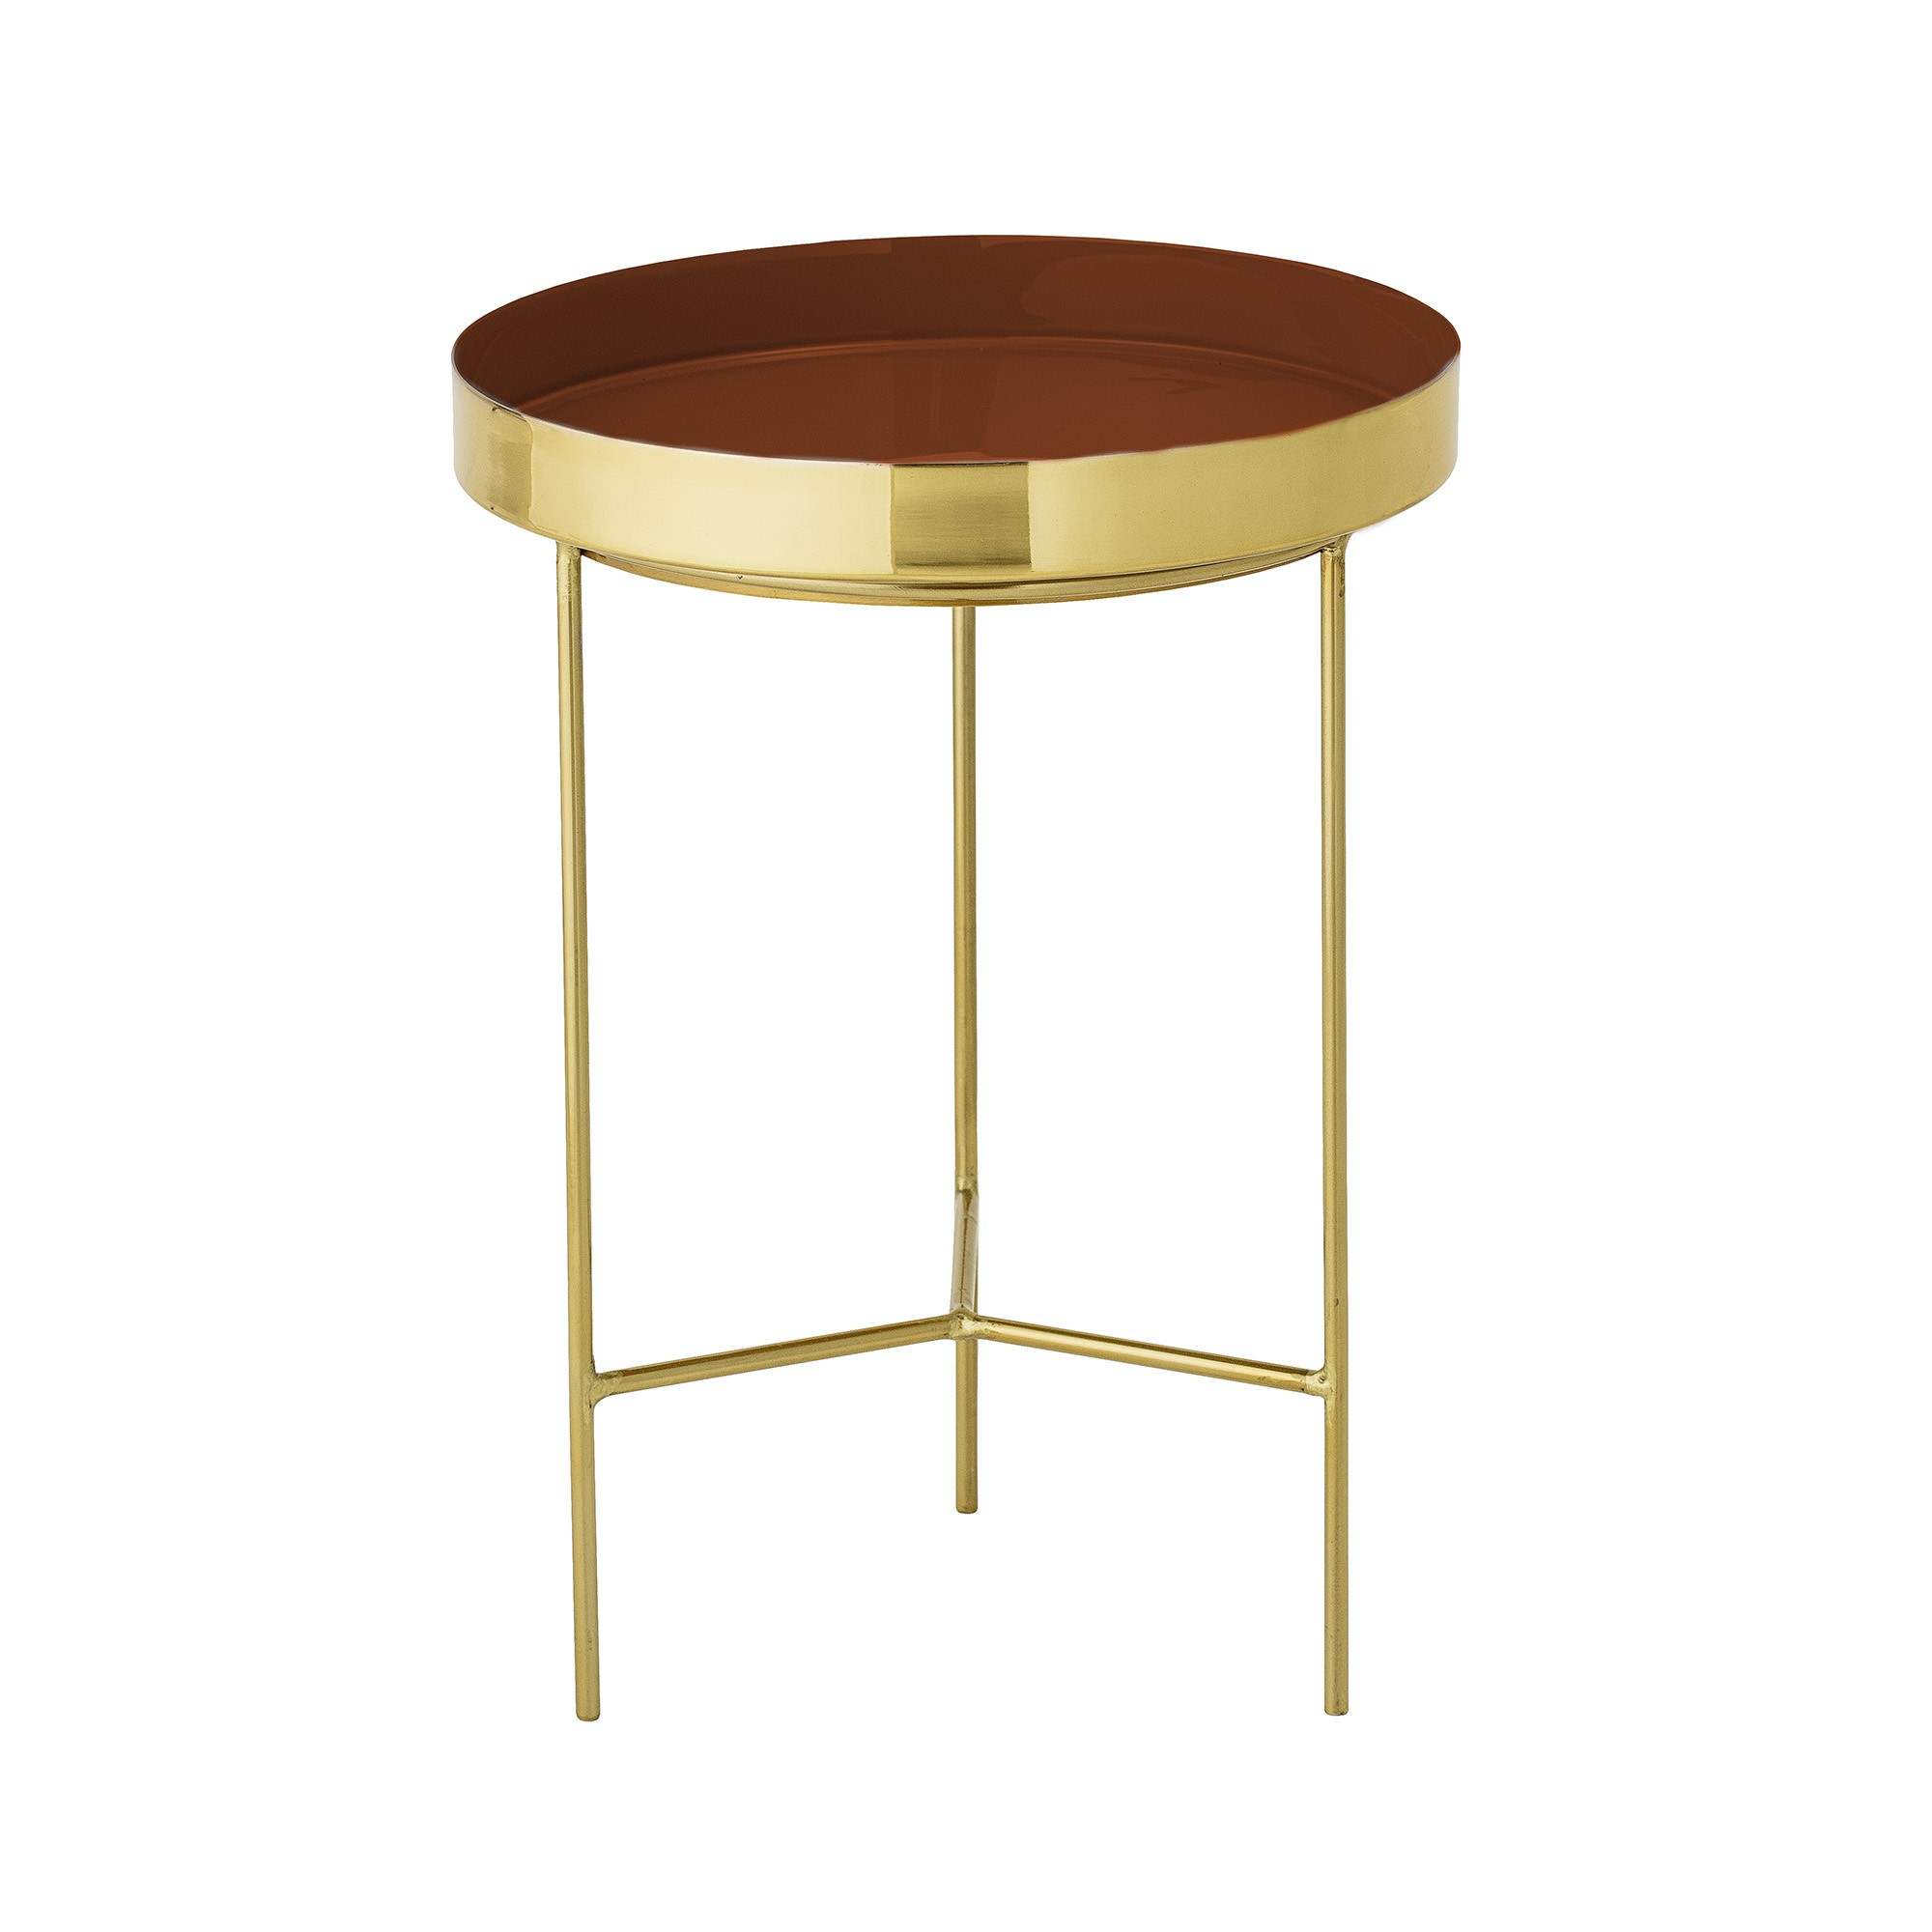 the jewel tray table red gold finish legs medium coffee accent with removable kitchen furniture tile floor threshold glass nesting end tables pier imports clear acrylic nest